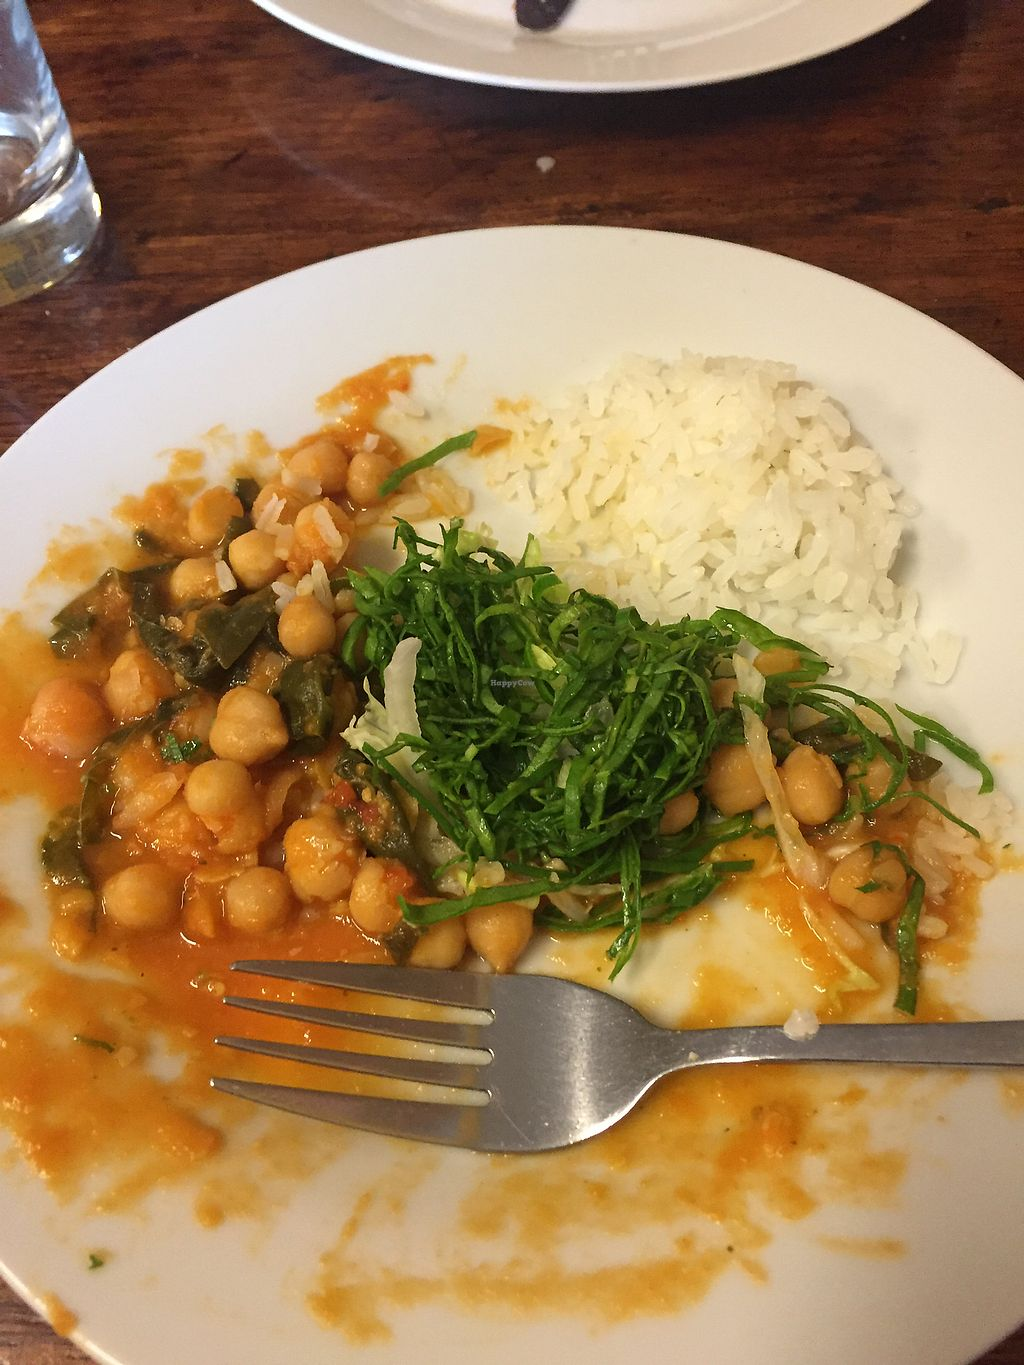 "Photo of El Encuentro - Sta Catalina Ancha  by <a href=""/members/profile/Dianebg"">Dianebg</a> <br/>Chickpea curry <br/> October 17, 2017  - <a href='/contact/abuse/image/5748/316171'>Report</a>"